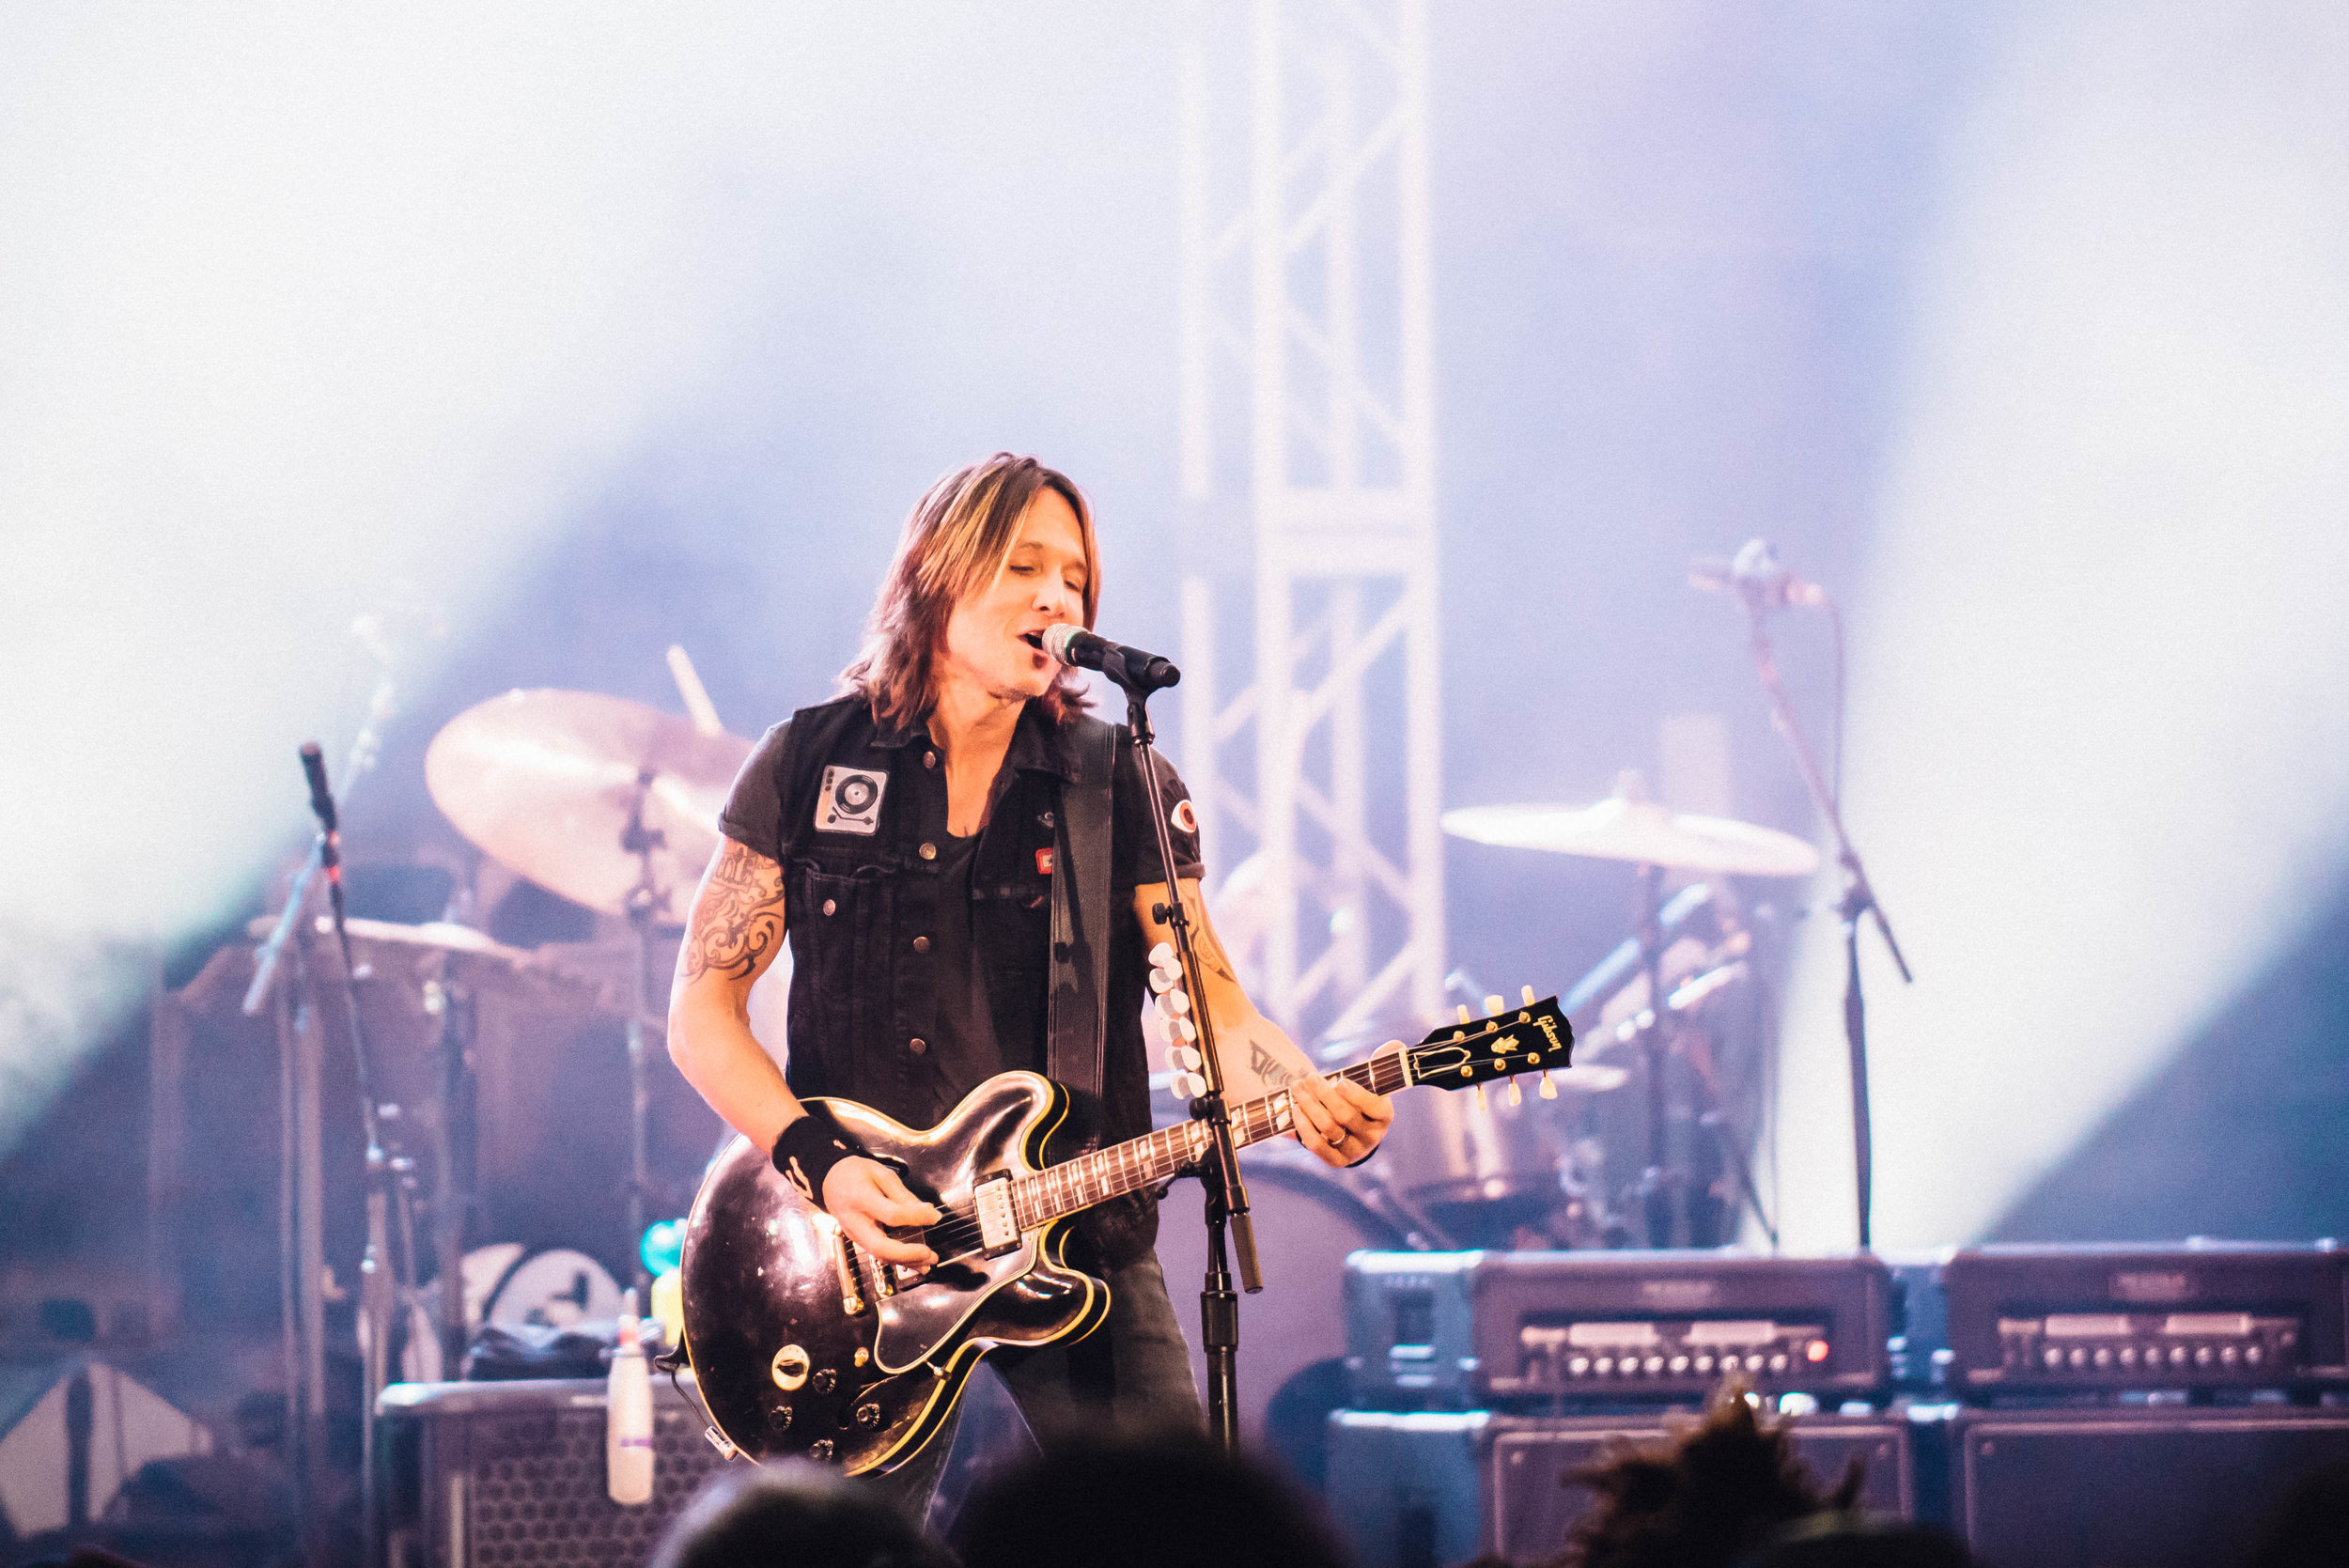 Keith Urban at SXSW 2018 | Jordan Hefler